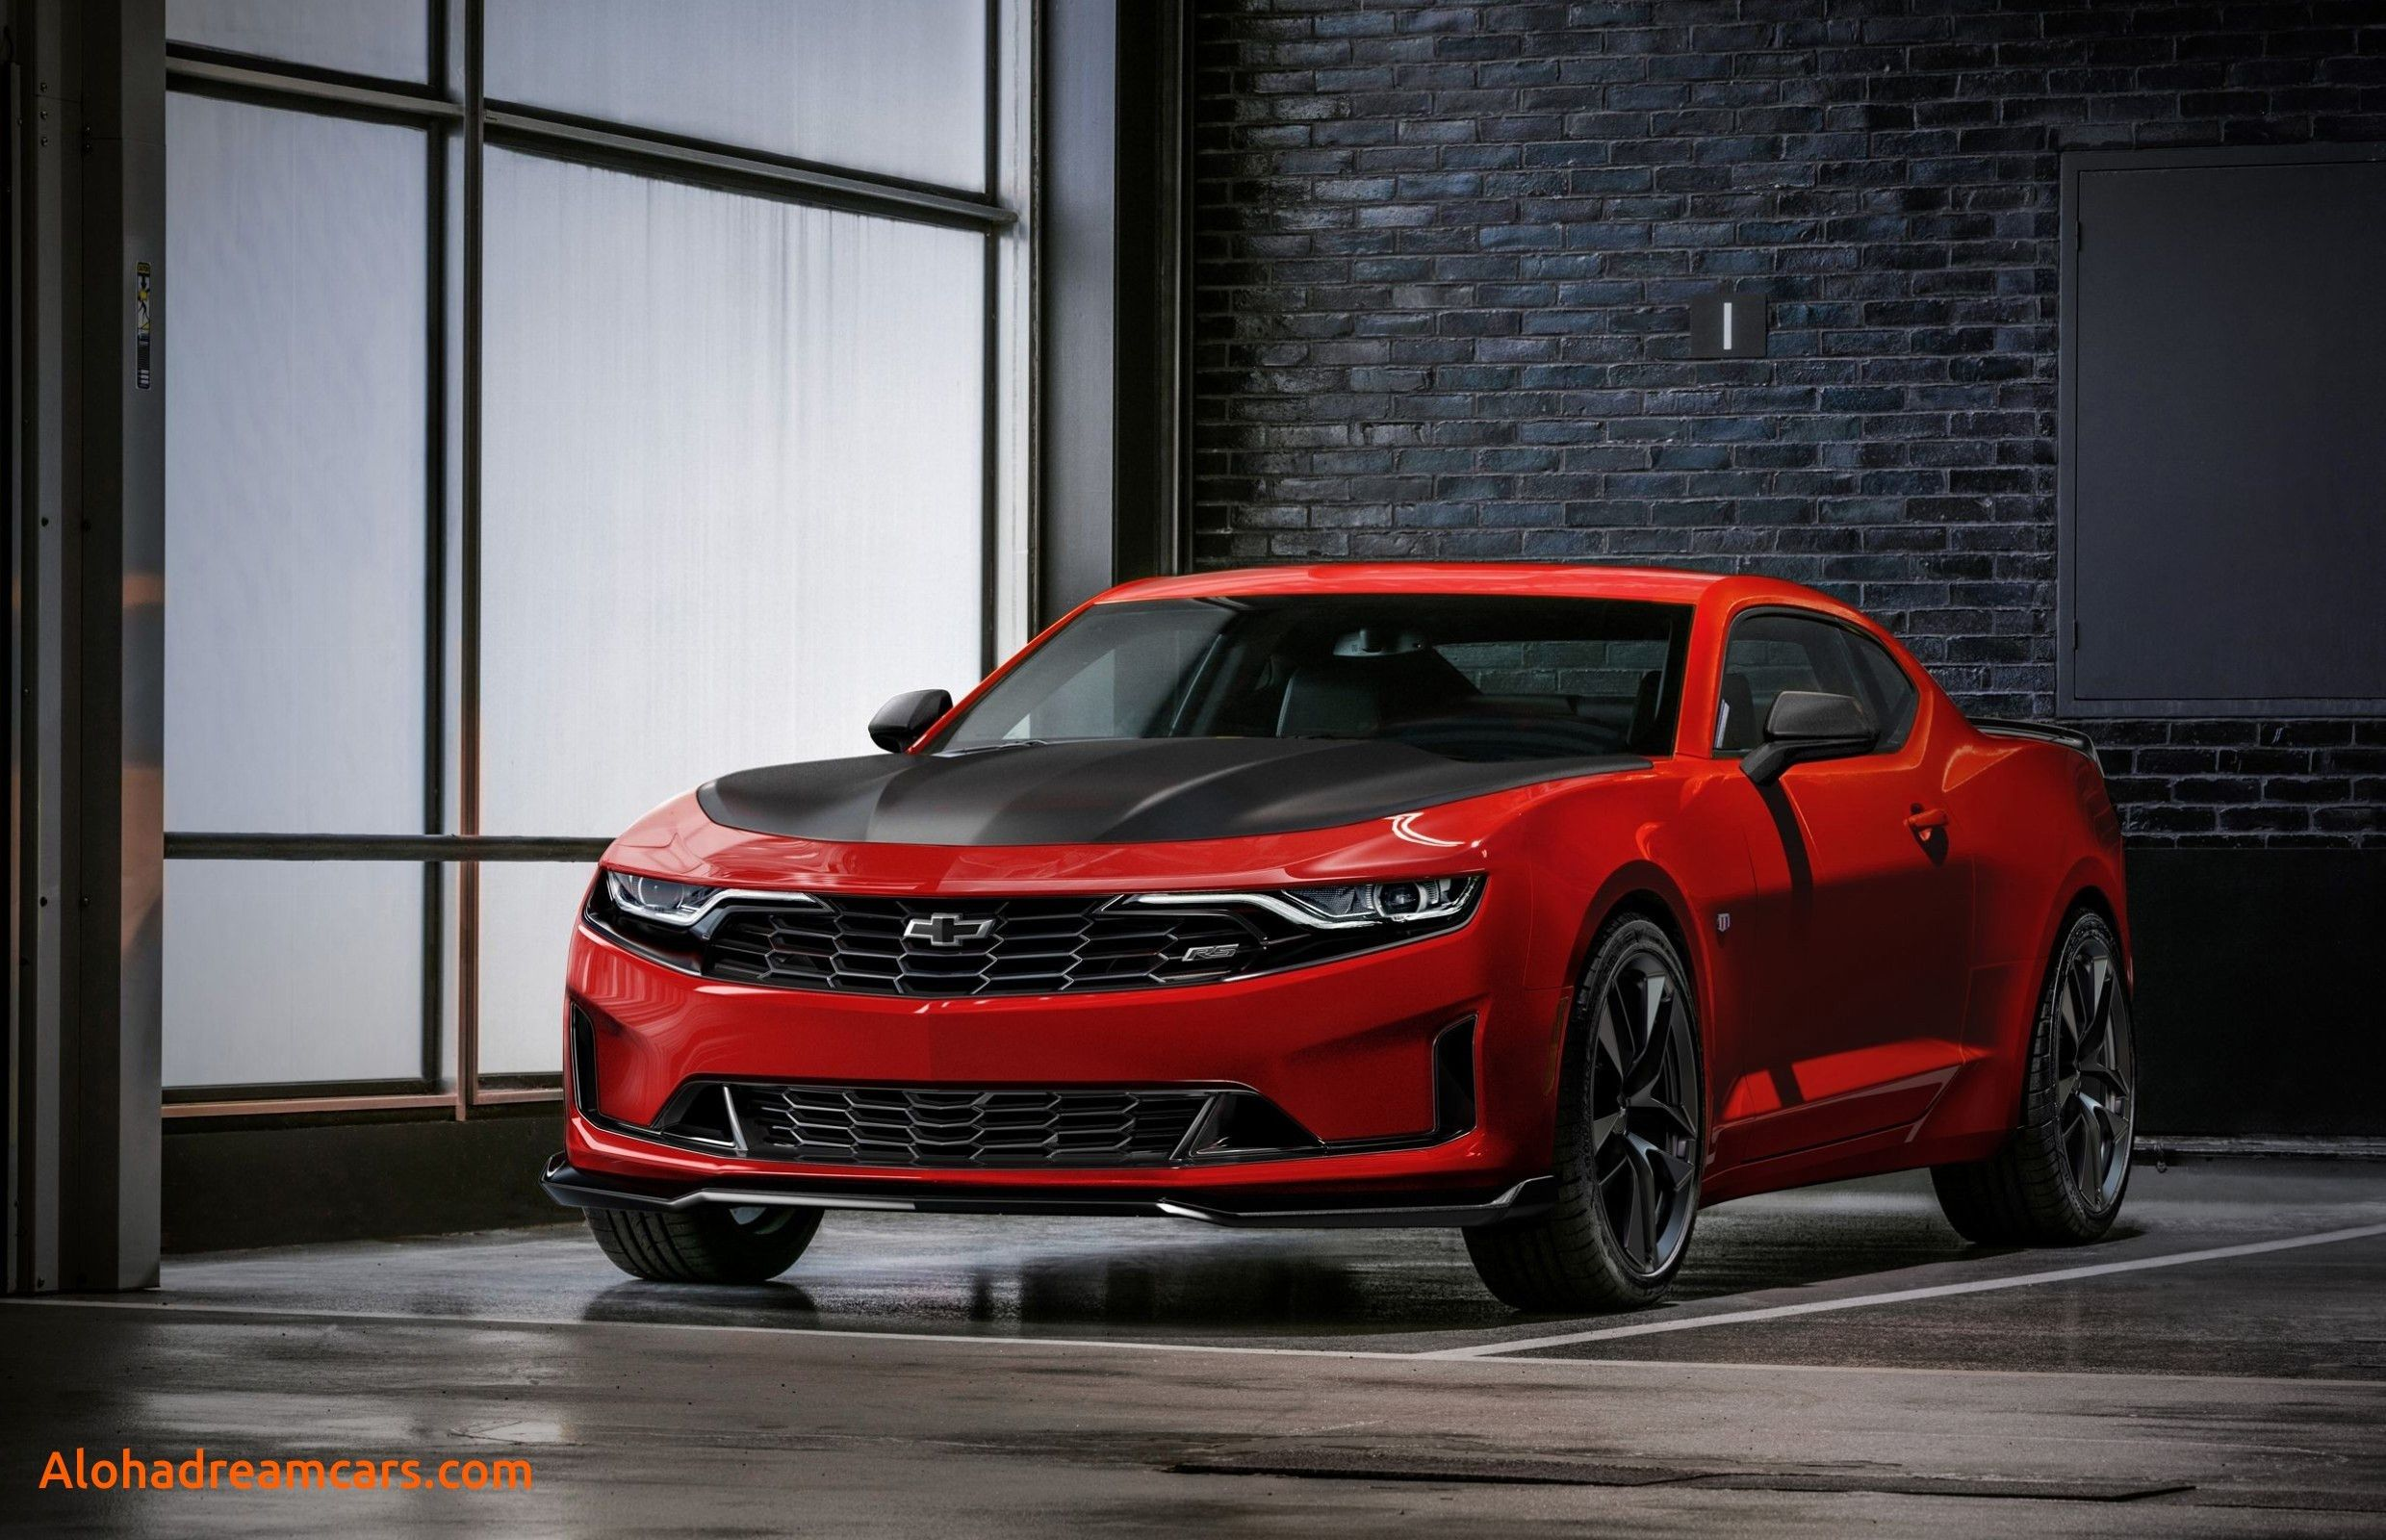 Chevy Camaro 2018 Price Check More At Http Www Autocarblog Club